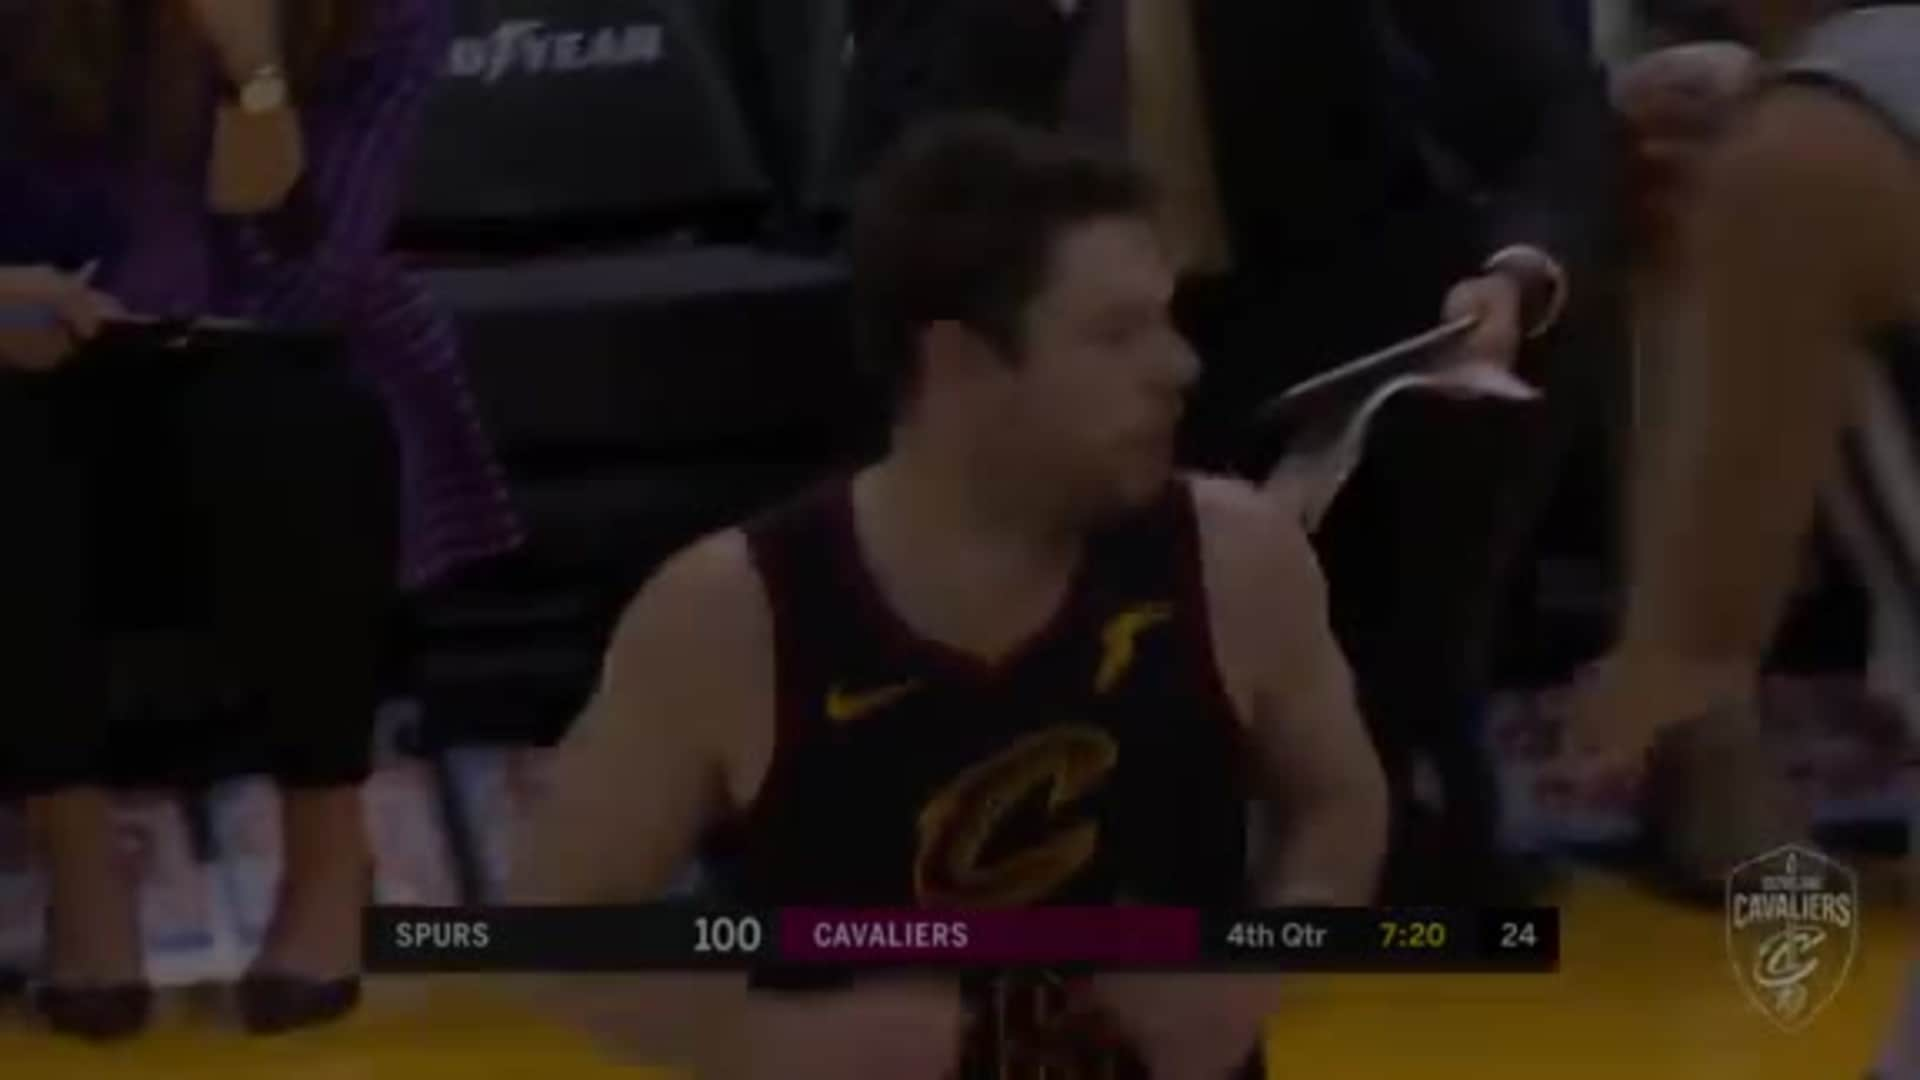 Delly Ties Game Up with a Three Ball